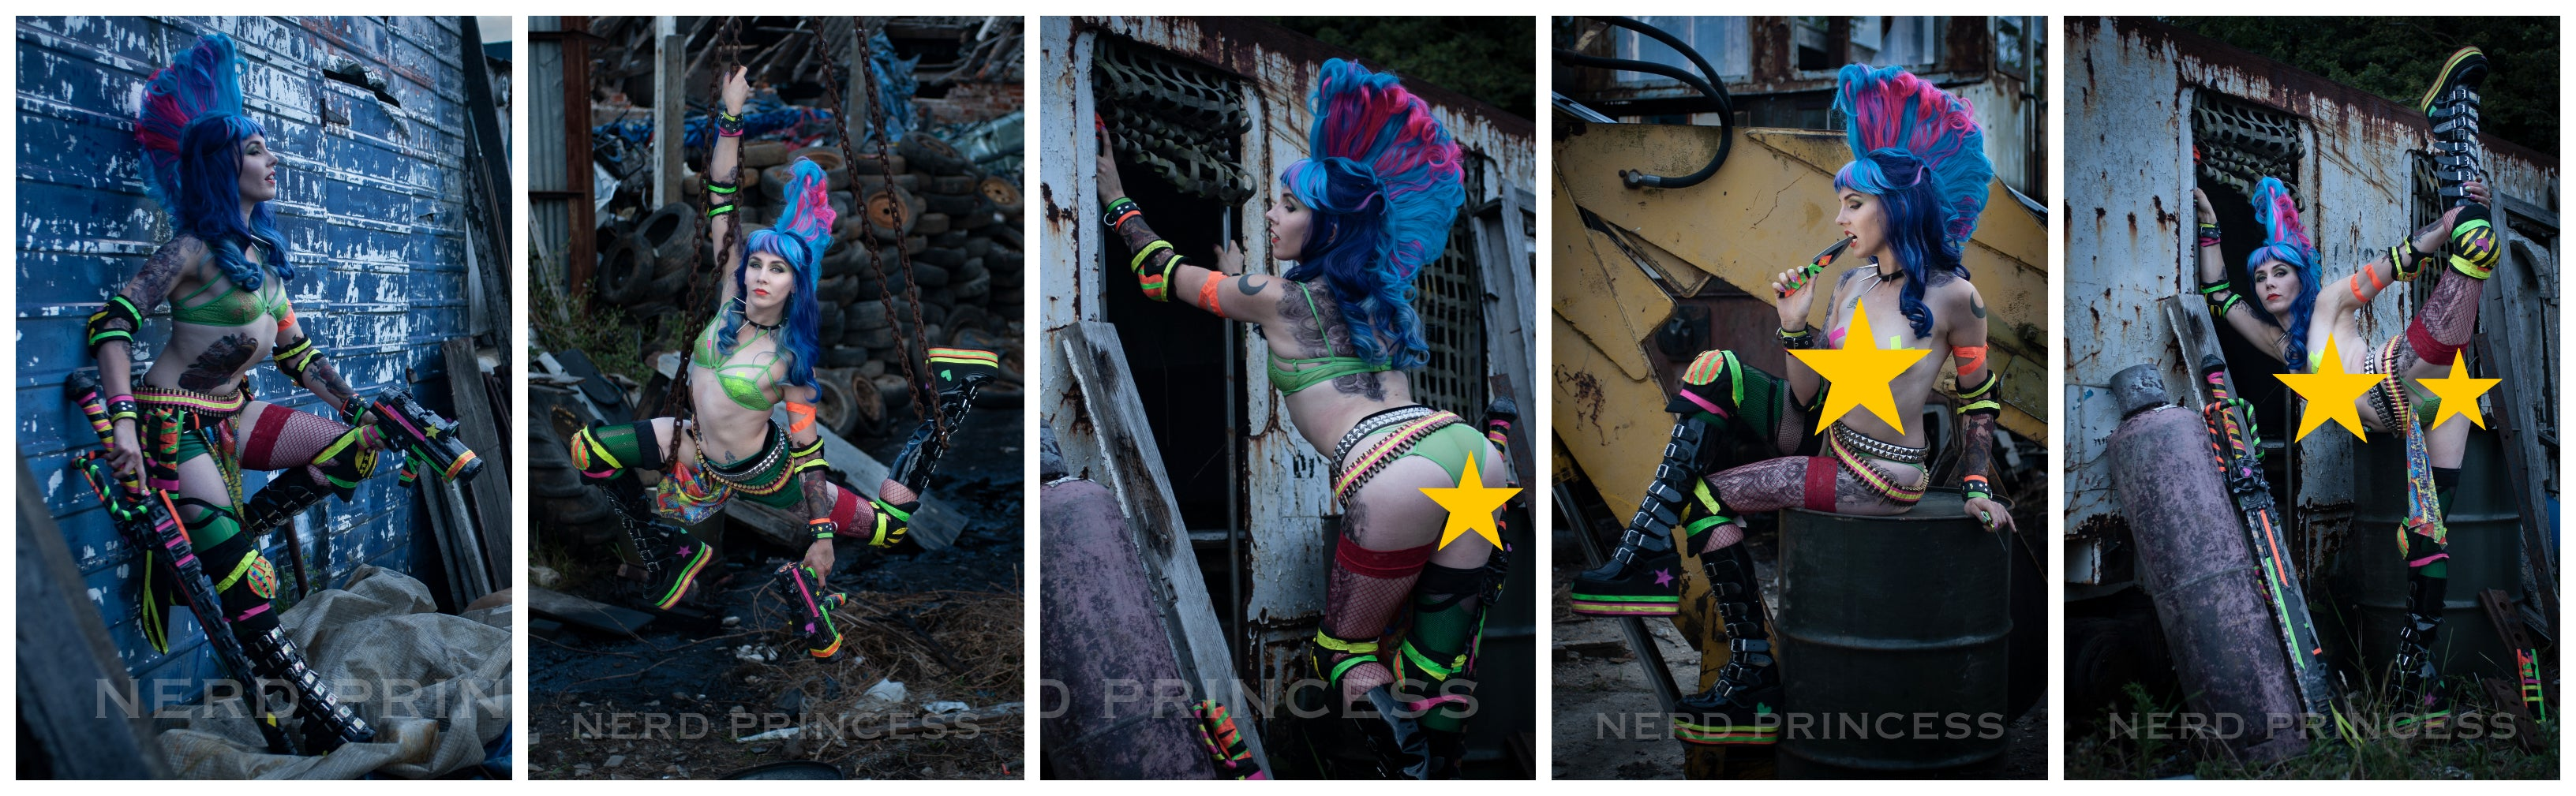 Digital Photo set 09 - Escher 1 - Scrapyard Adventures